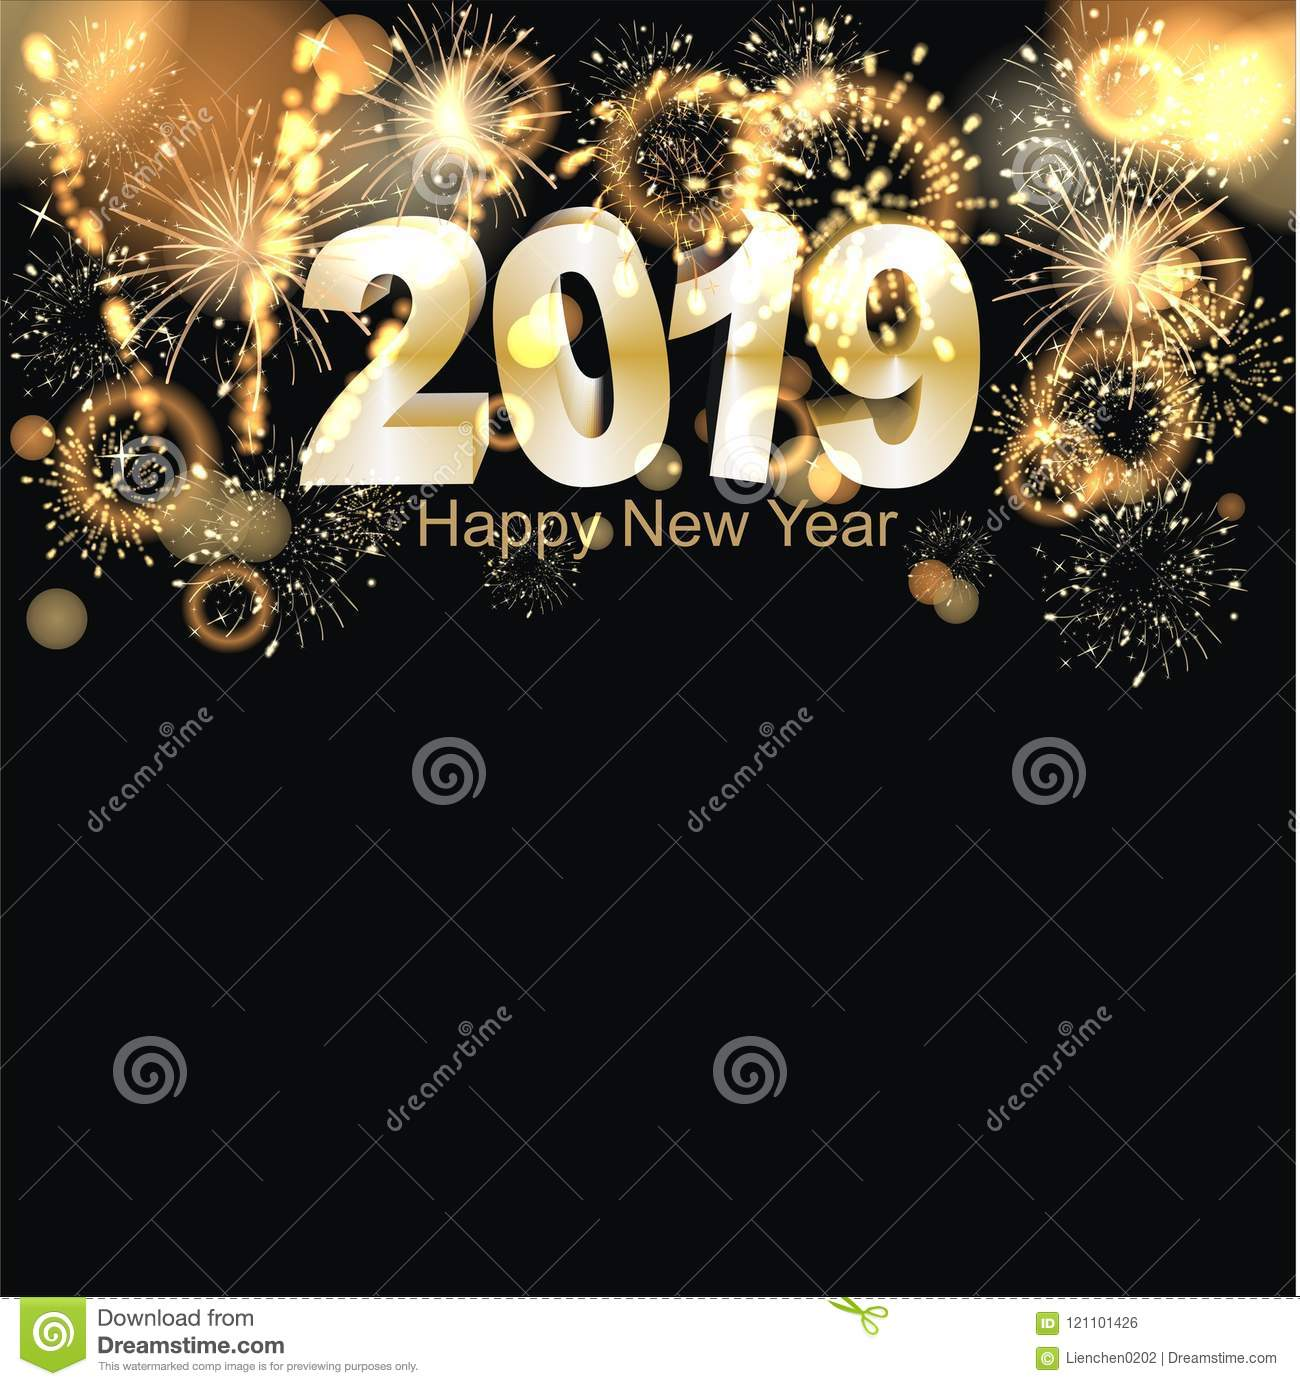 sylvester background at night with big golden firework reflection and happy new year greetings